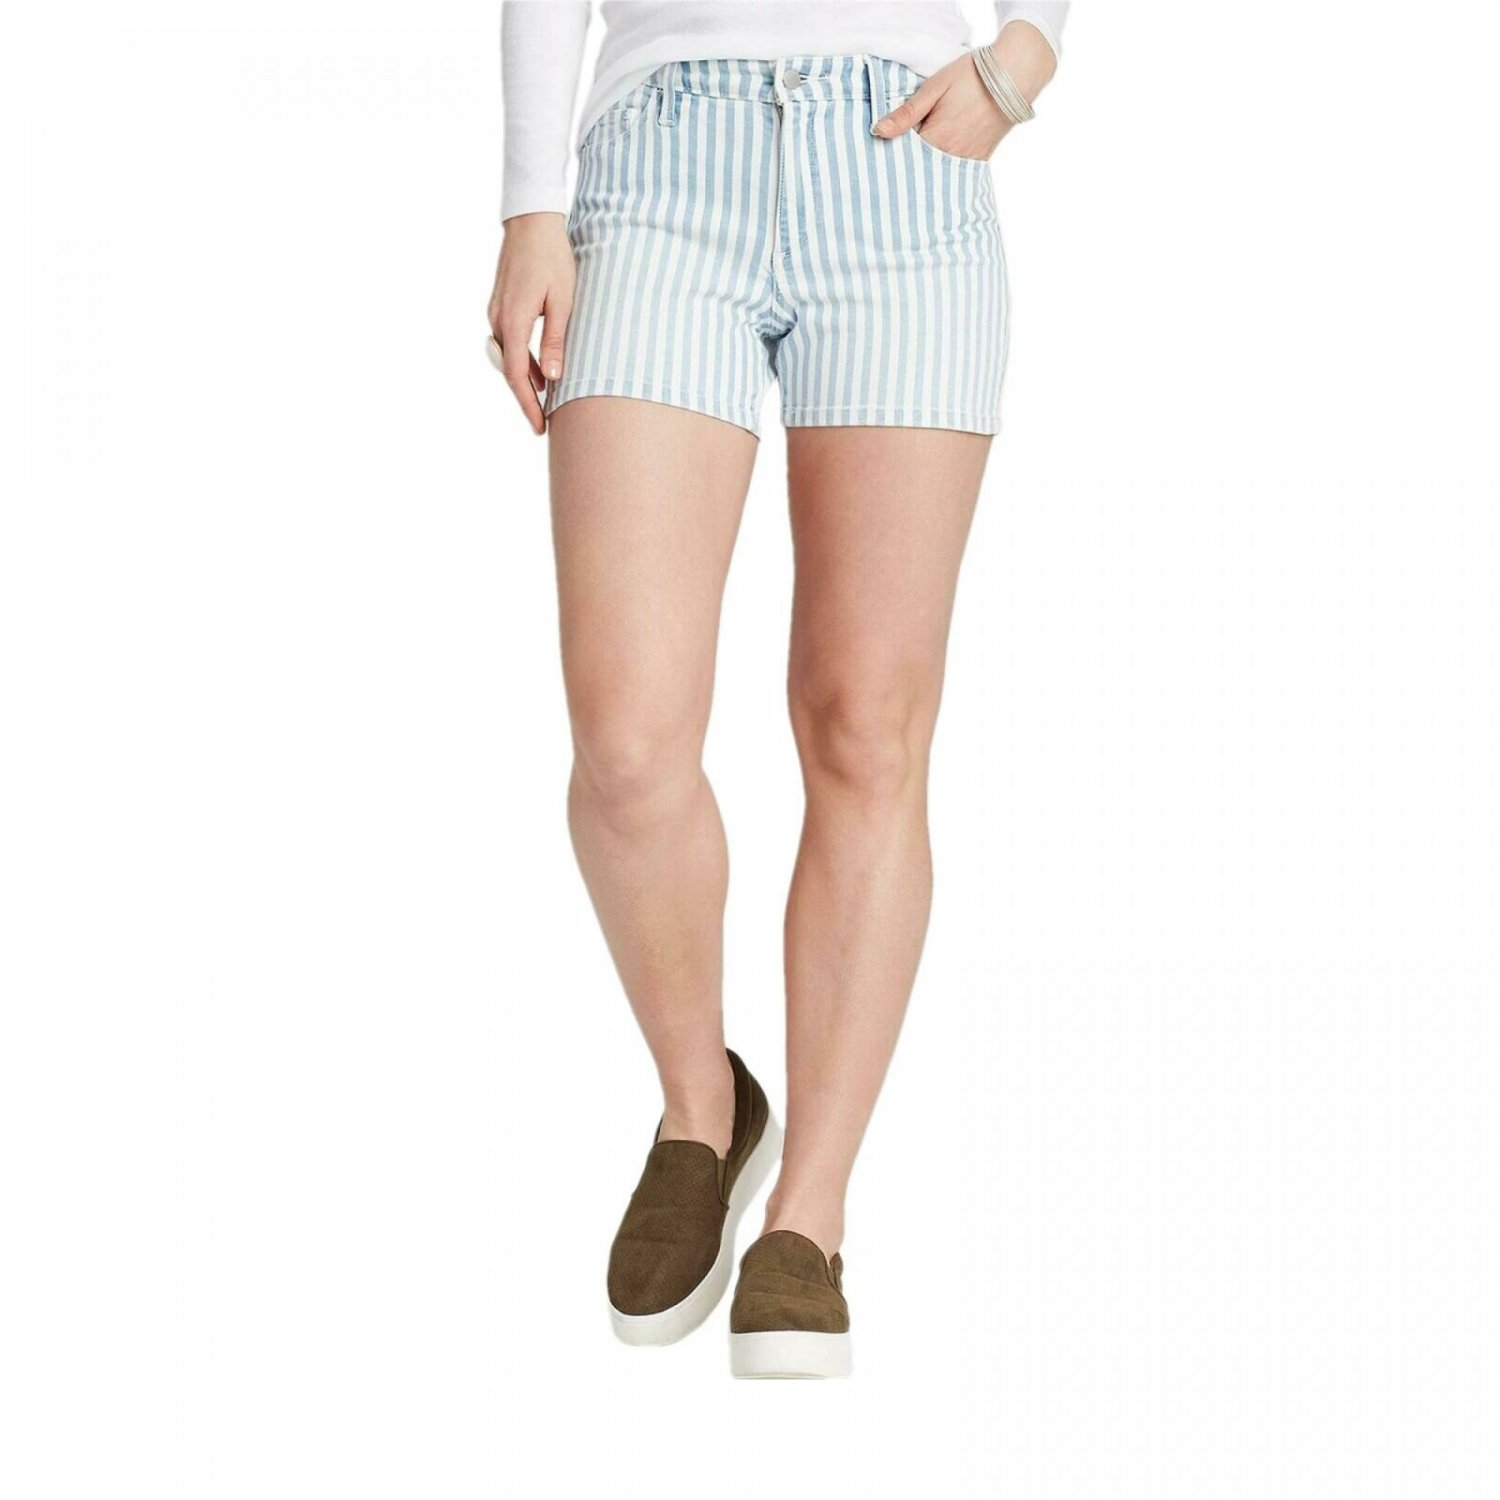 Universal Thread Women's Striped High Rise Jean Shorts 12 Geek Stripe Blue and White